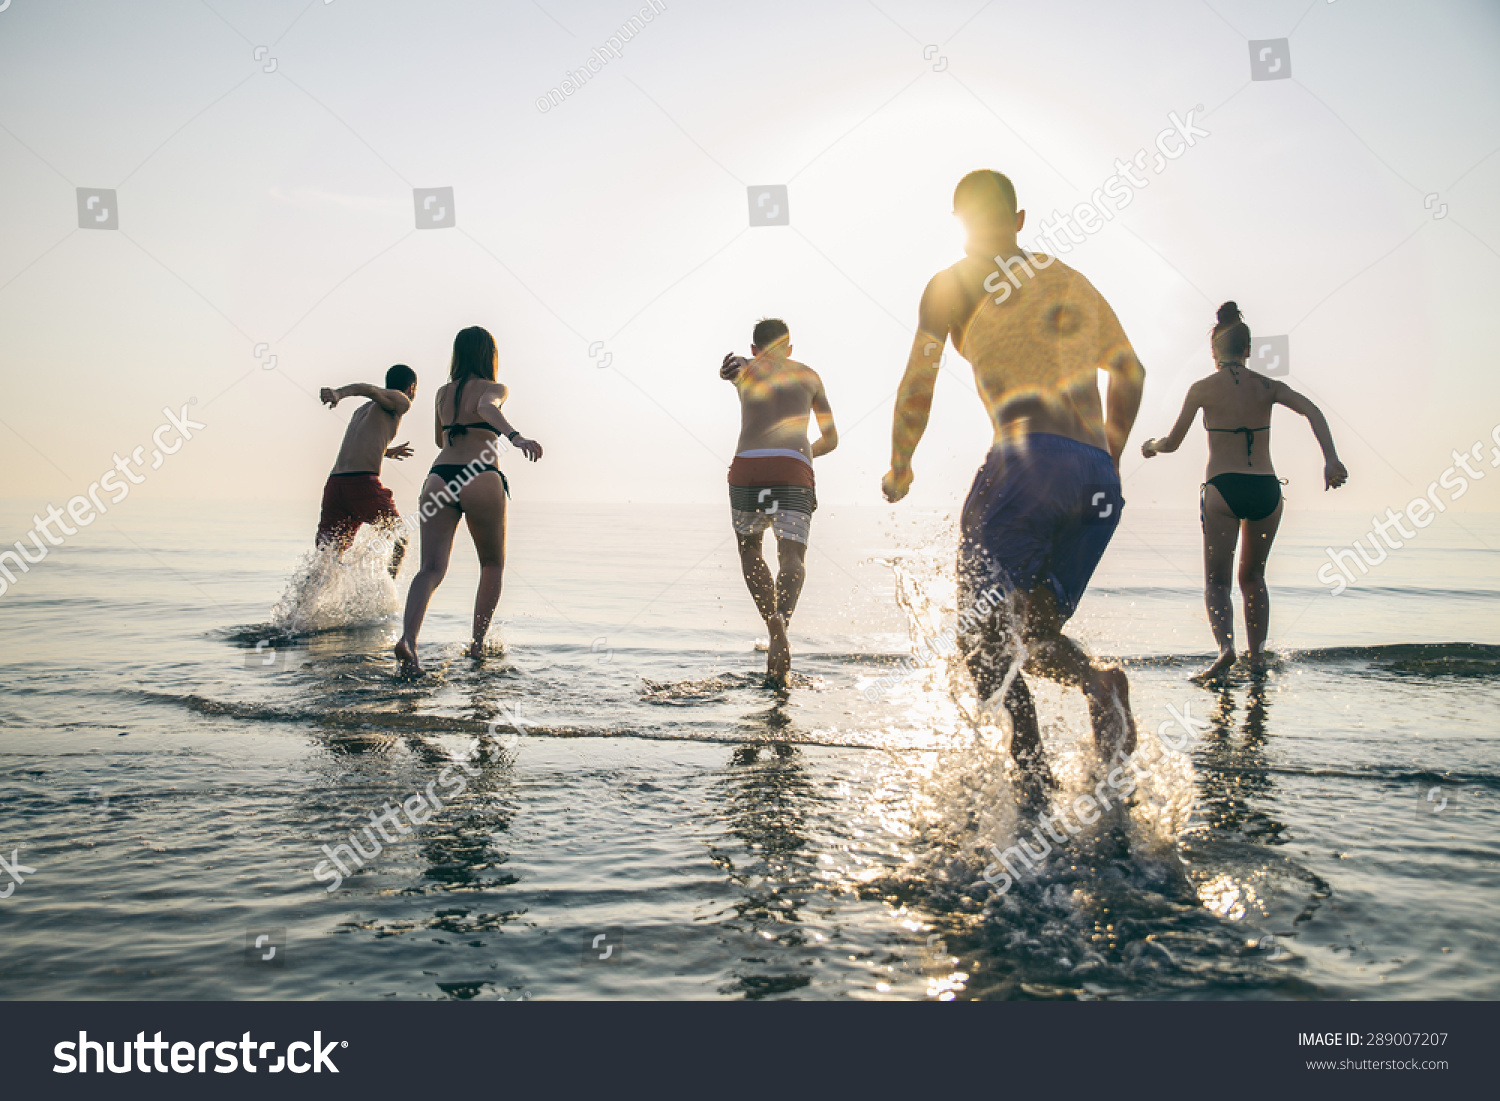 Group of happy friends running in to water at sunset - Silhouettes of active people having fun on the beach on vacation - Tourists going to swim on a tropical island #289007207